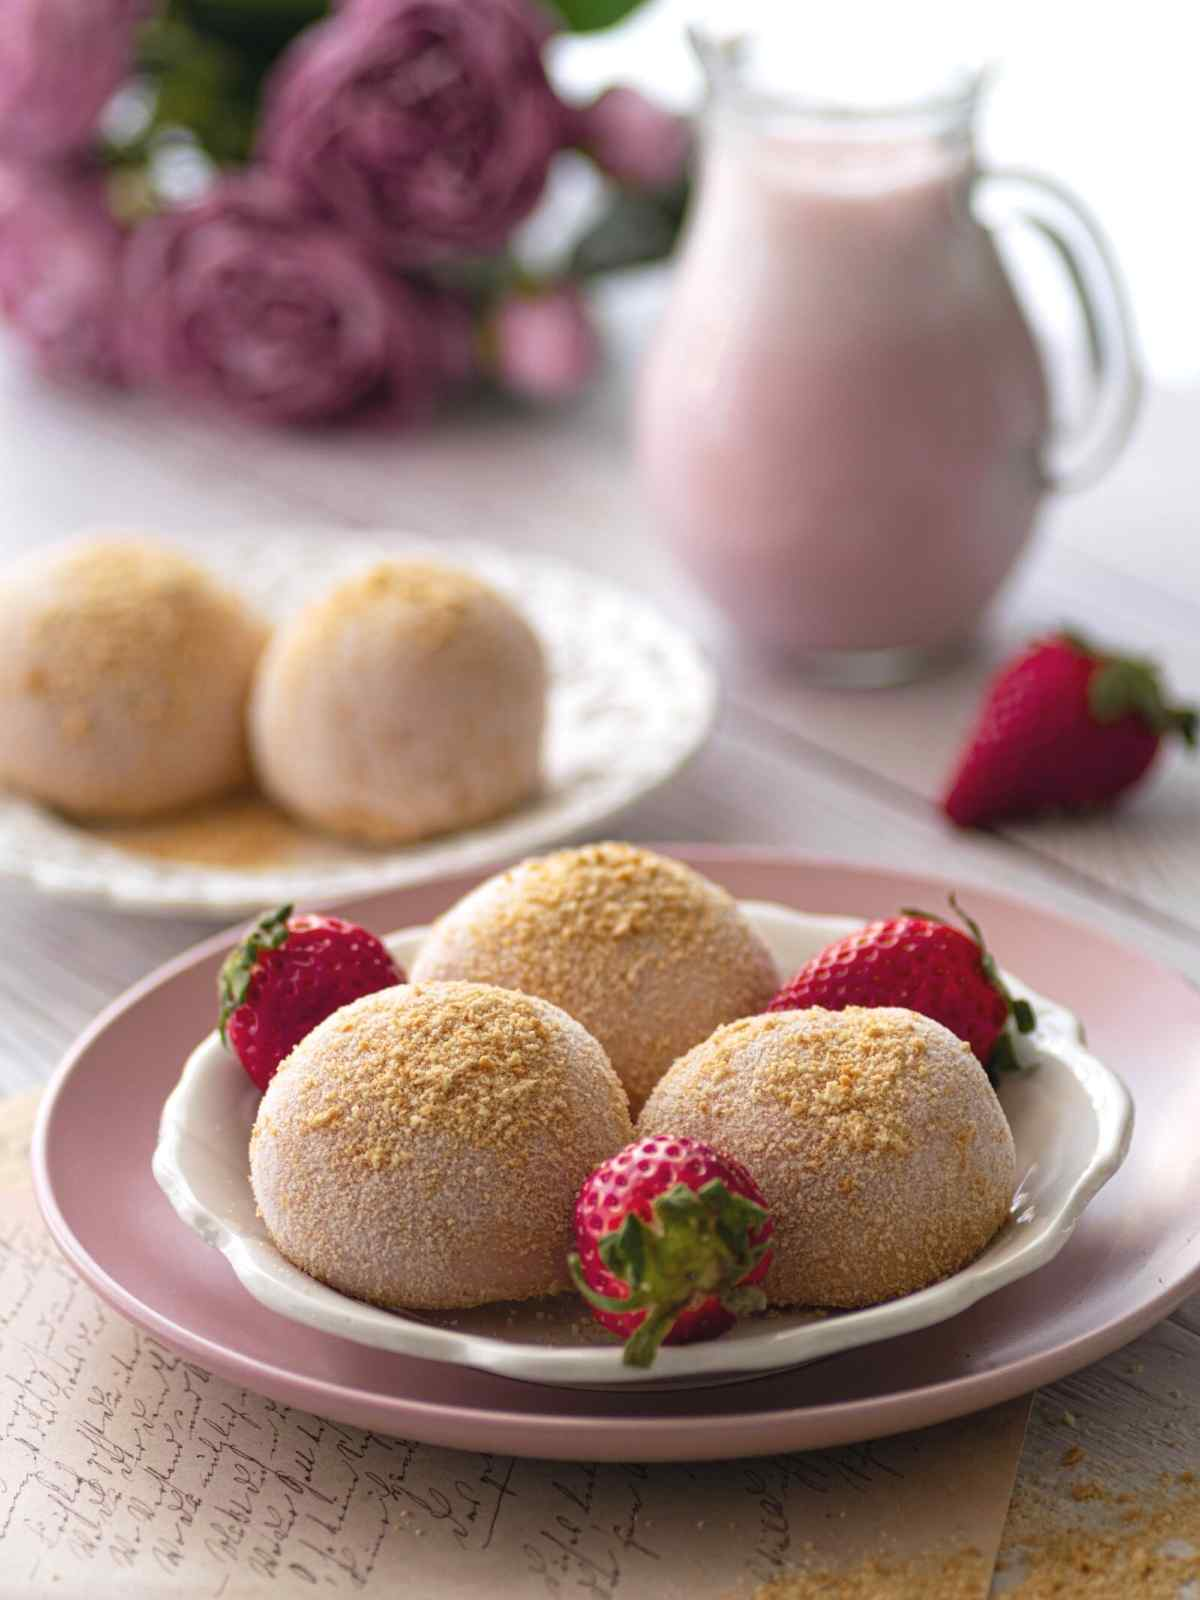 Three strawberry cheesecake mochi on a white plate with strawberries in between the mochi